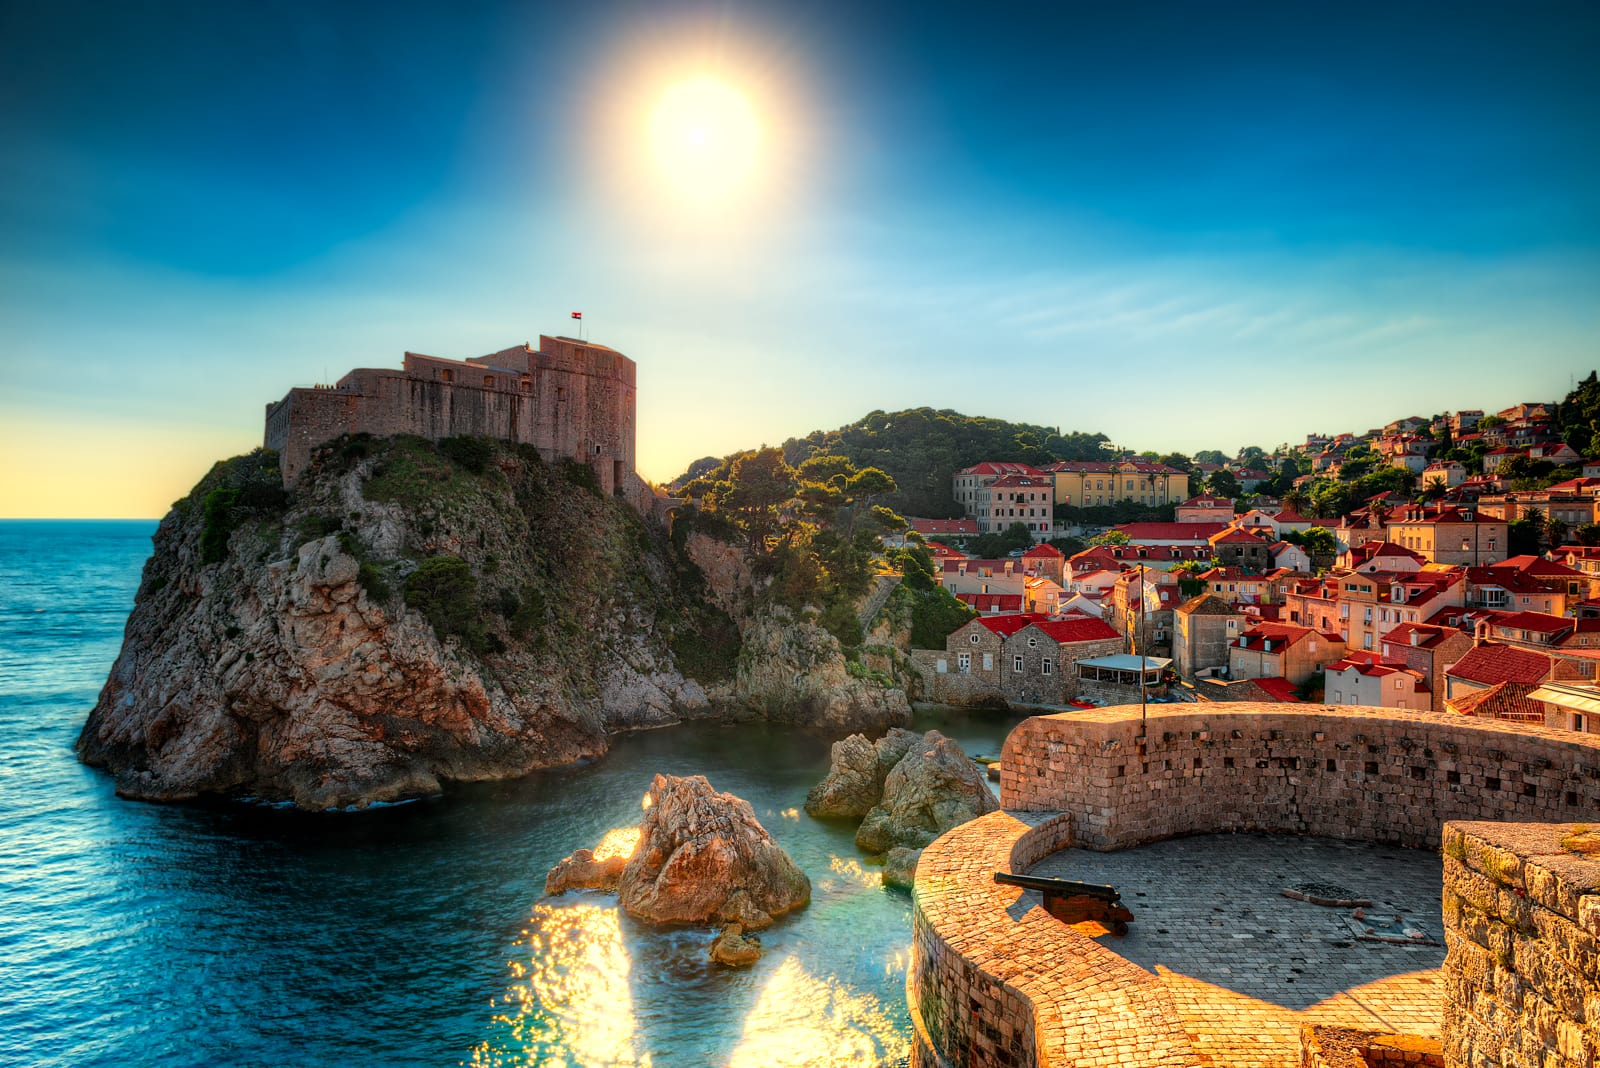 Town Wall and King's Landing in Dubrovnik, Croatia